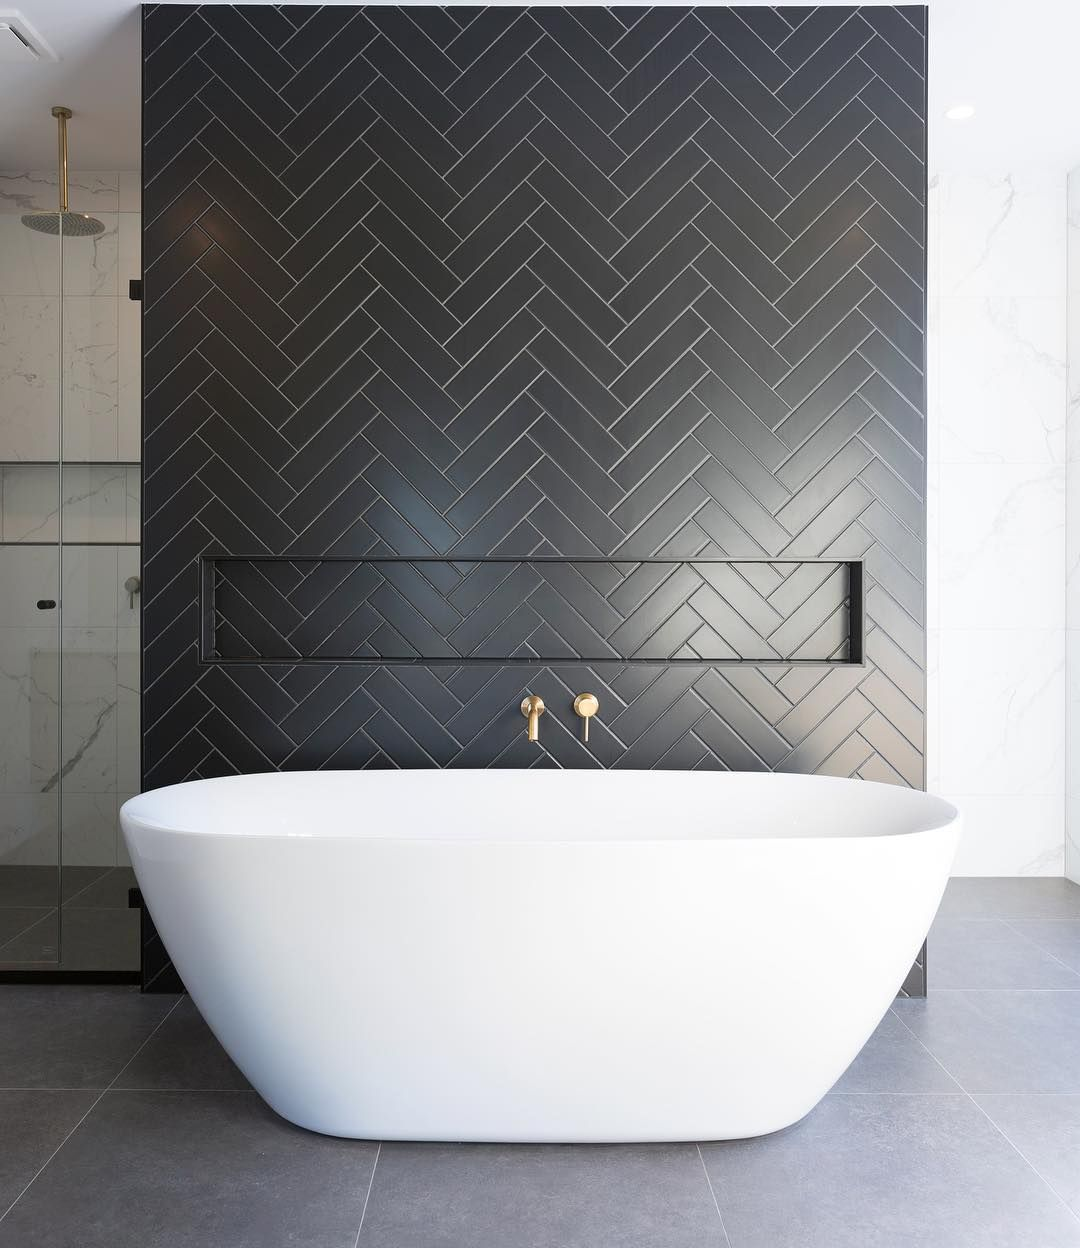 Bathrooms with Black Herringbone Tiles and white freestanding bathtub @turboconstructionau